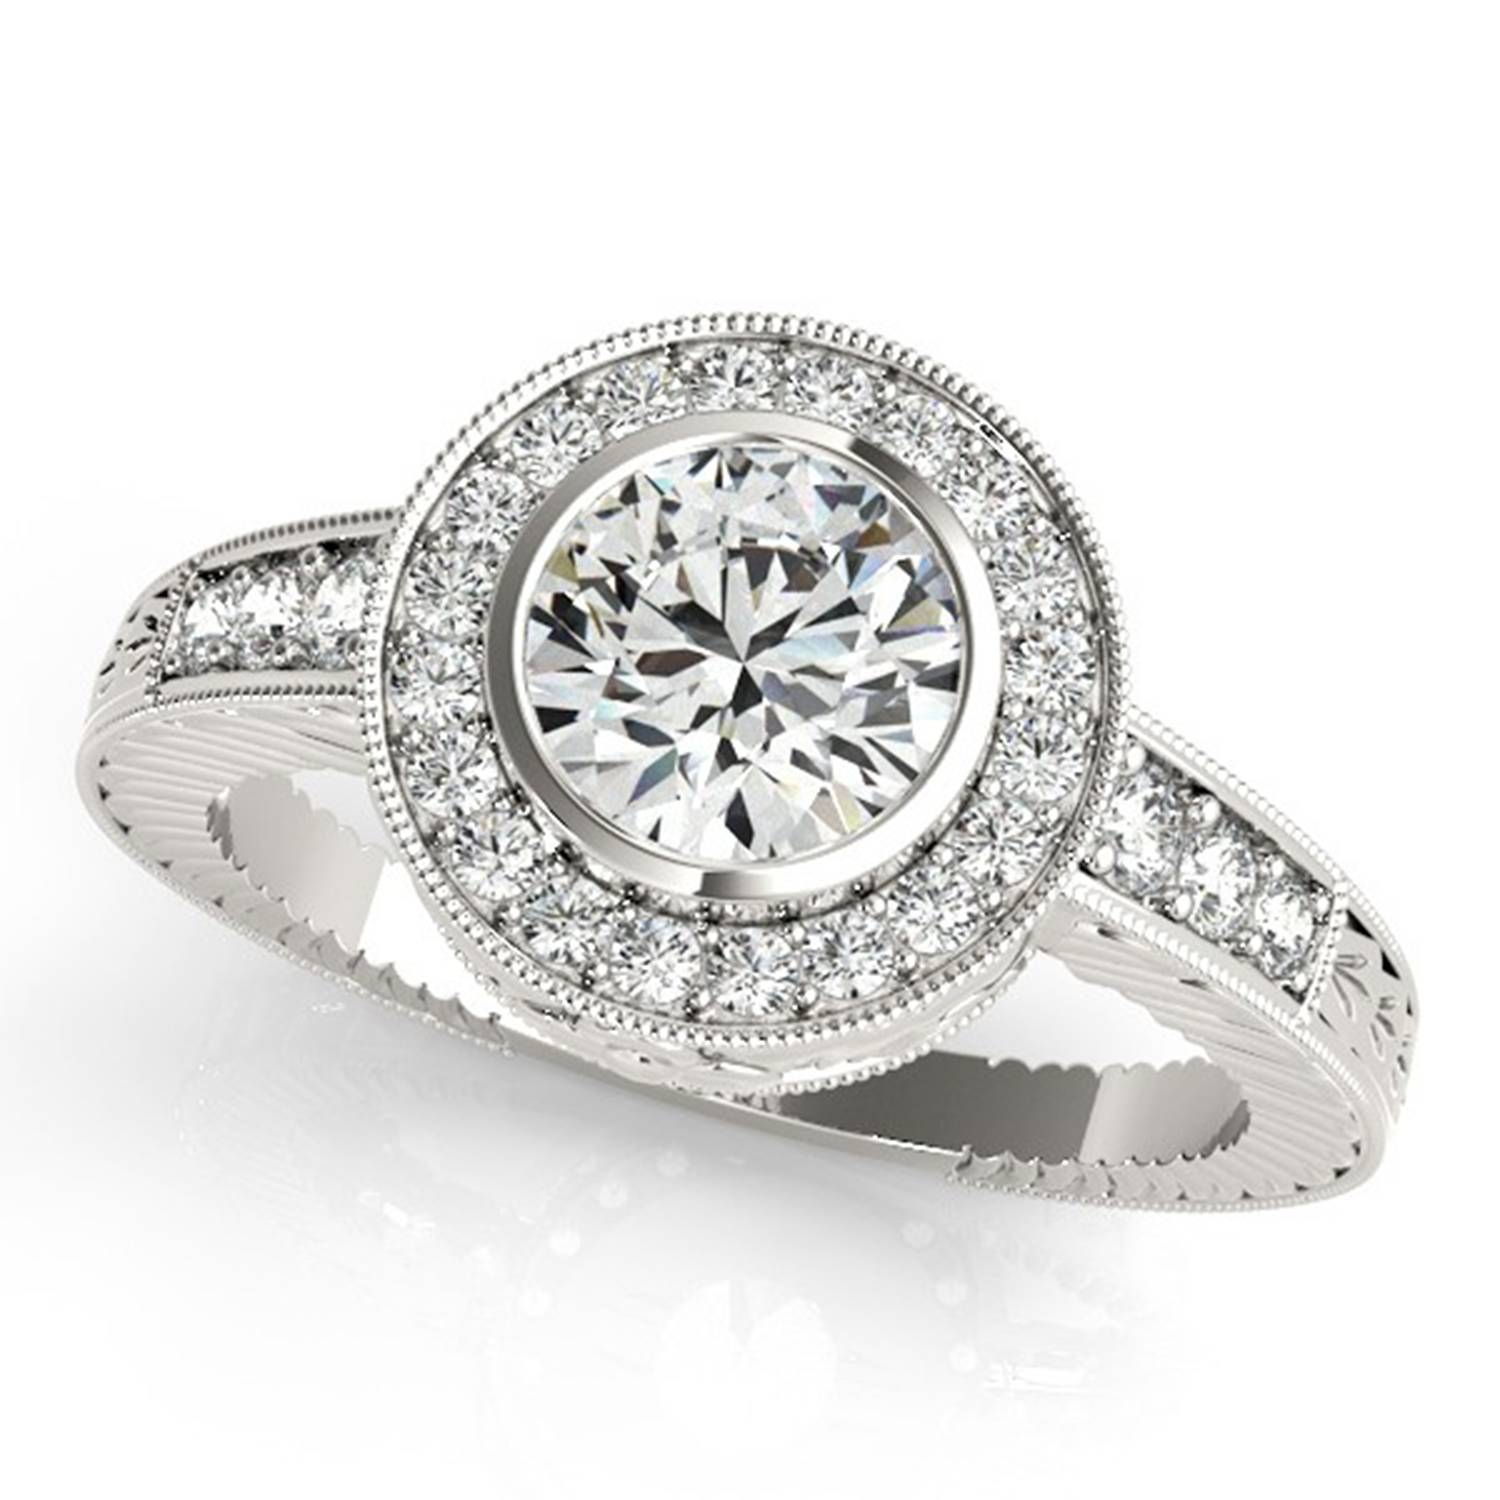 1/2 Carat Bold Design Halo Bezel Set Rebecca Style Diamond With Halo Style Diamond Engagement Rings (View 2 of 15)